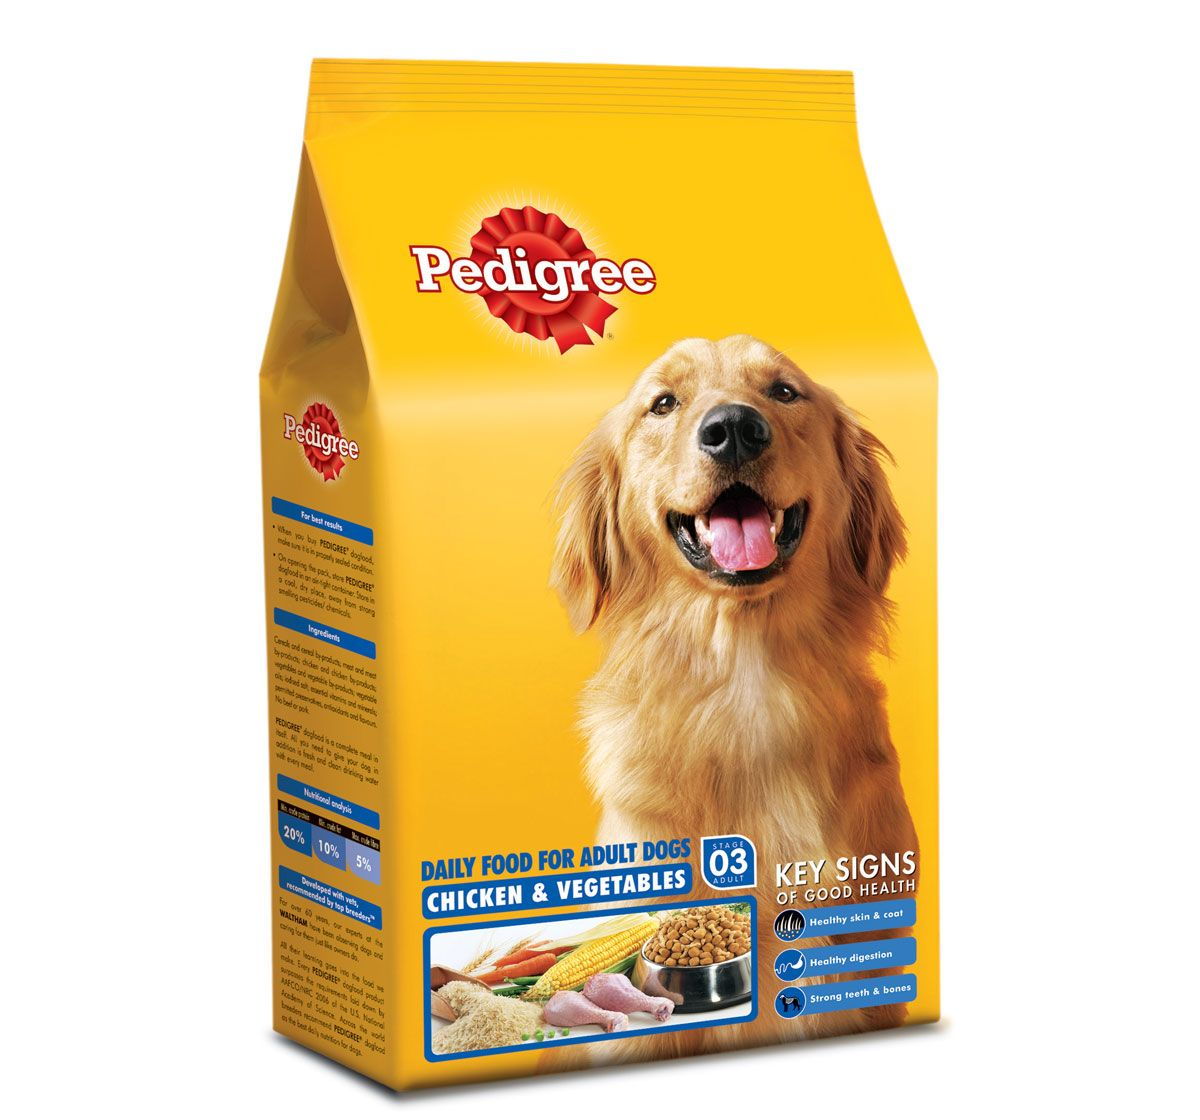 Ped1 1 Jpg 1200 1120 Dog Food Recipes Dog Food Online